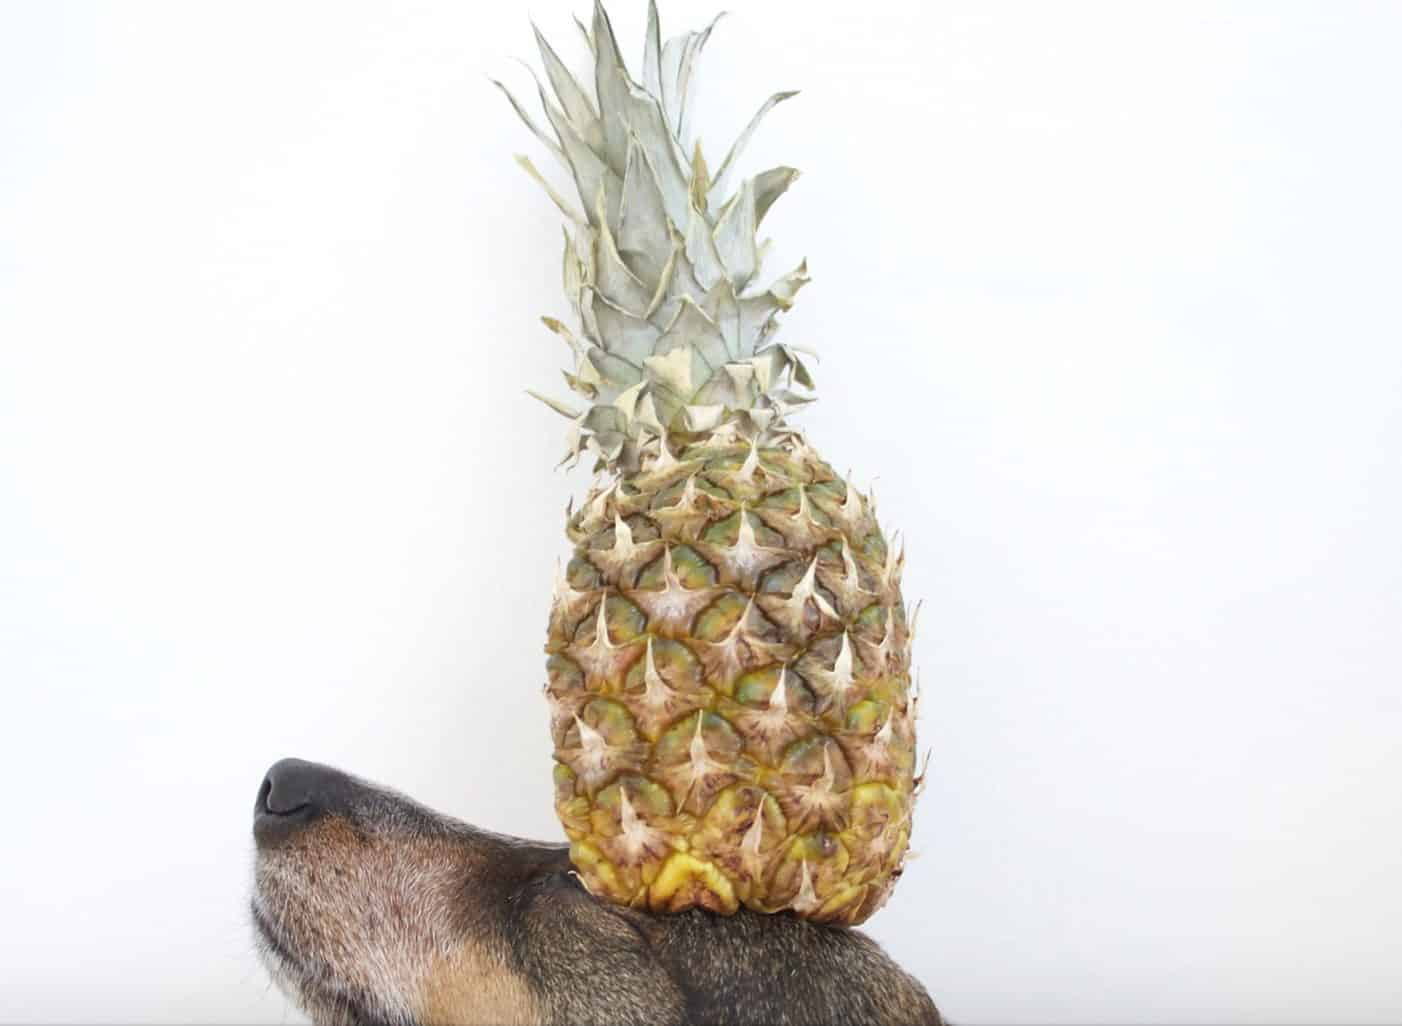 Dogs can eat pineapples only if they are prepared properly for them to consume.